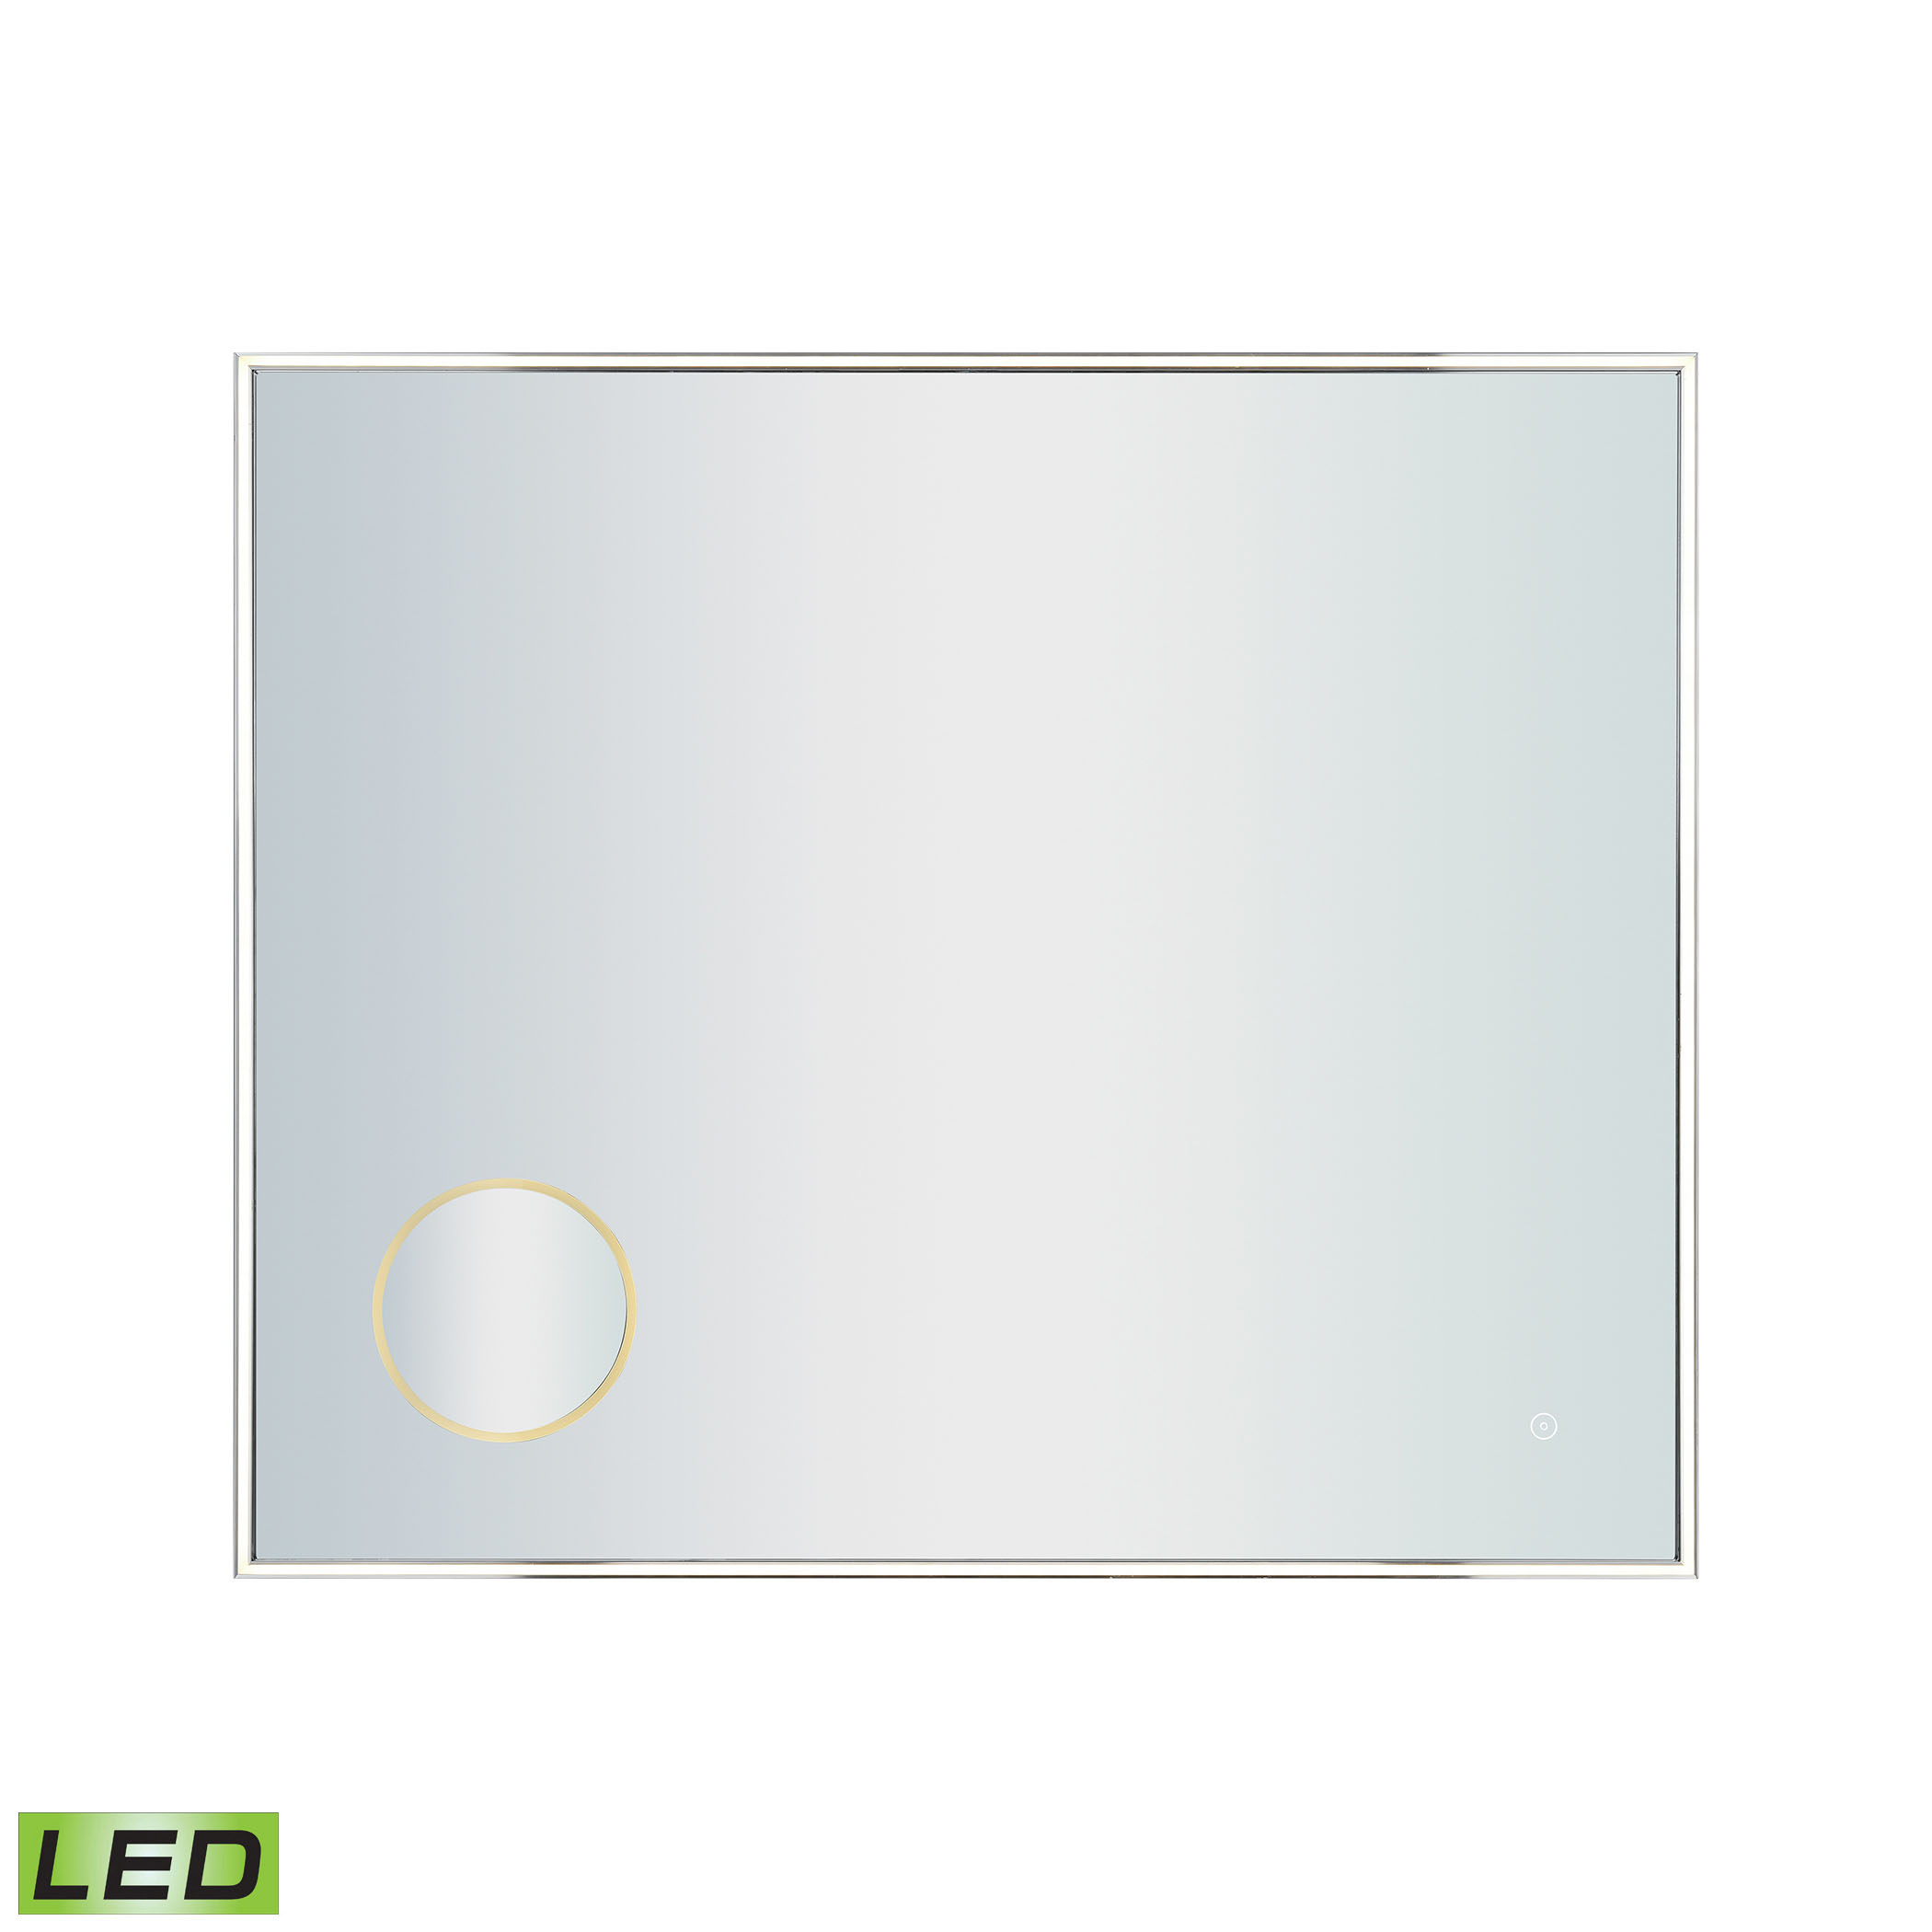 36X30-Inch LED Mirror with 3X Magnifier | Elk Home